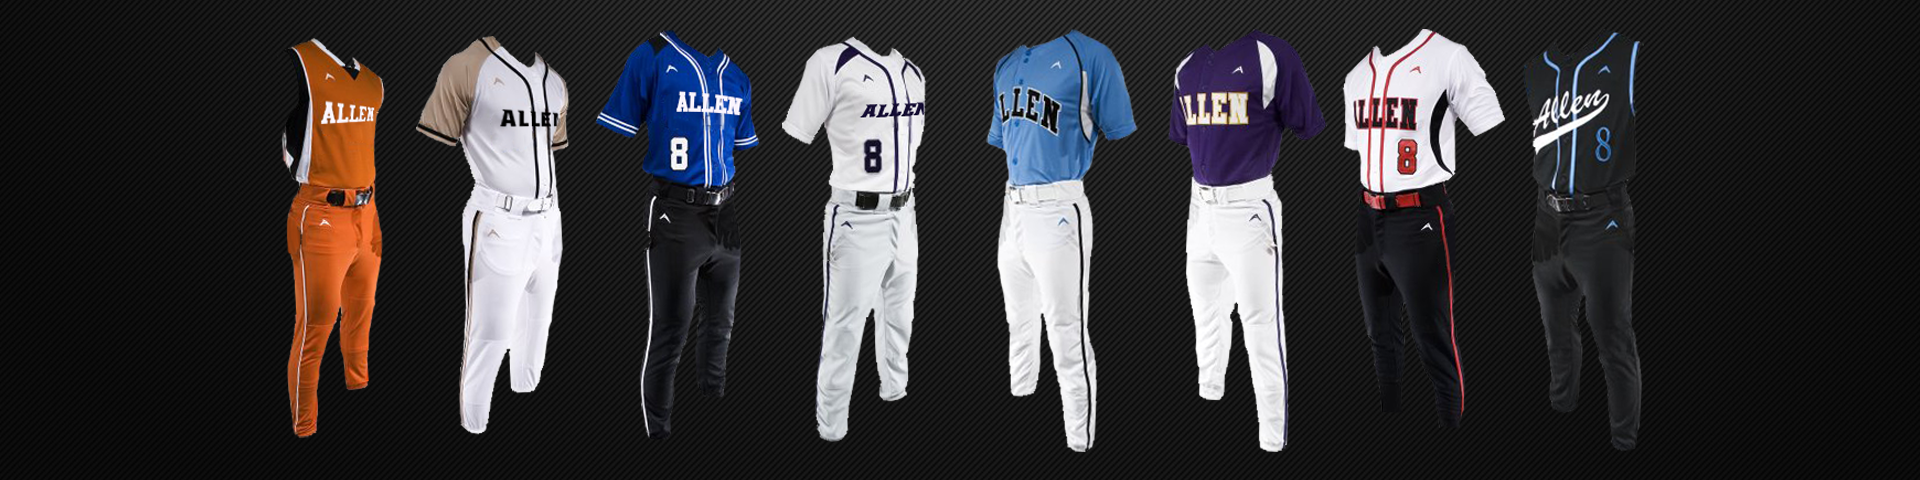 09a499d6f77 Men s and Boys Baseball Uniforms with Custom Designs